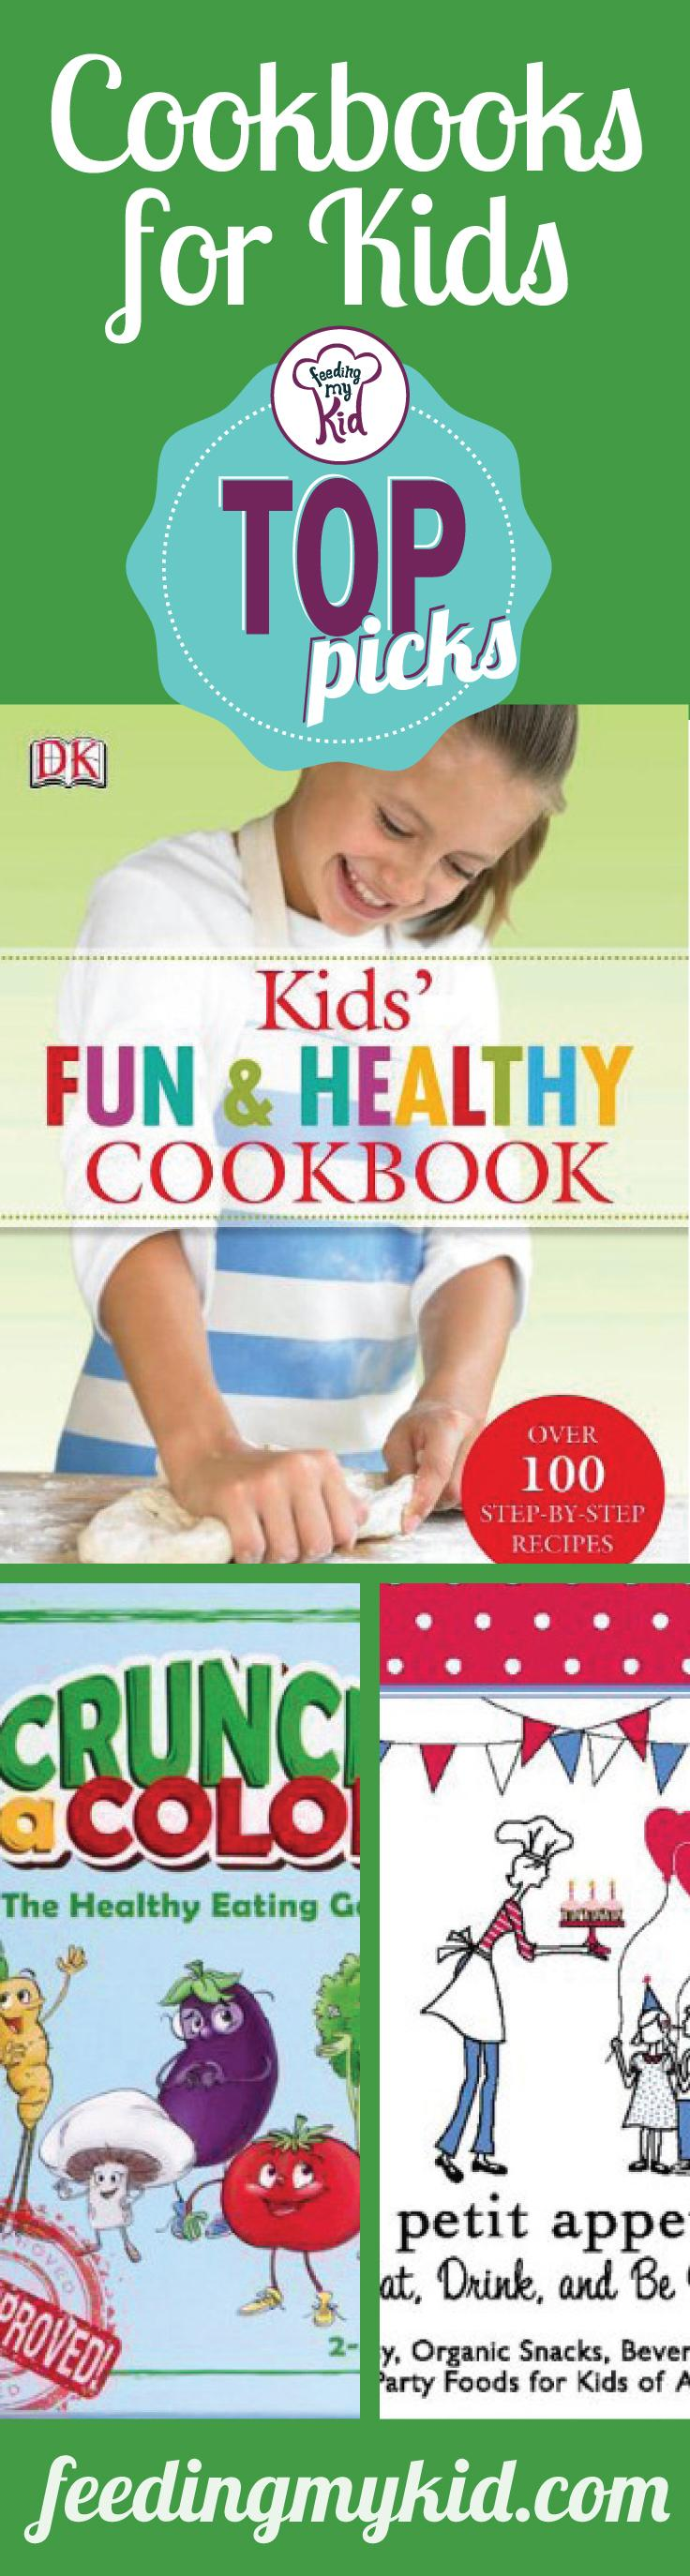 Top Picks: Cookbooks for Kids - Reading with your child and working together cooking foods is a great way to construct strong lasting bonds and to foster a healthy relationship between your child and the food he eats. Check out our article on cookbooks; you won't regret it!